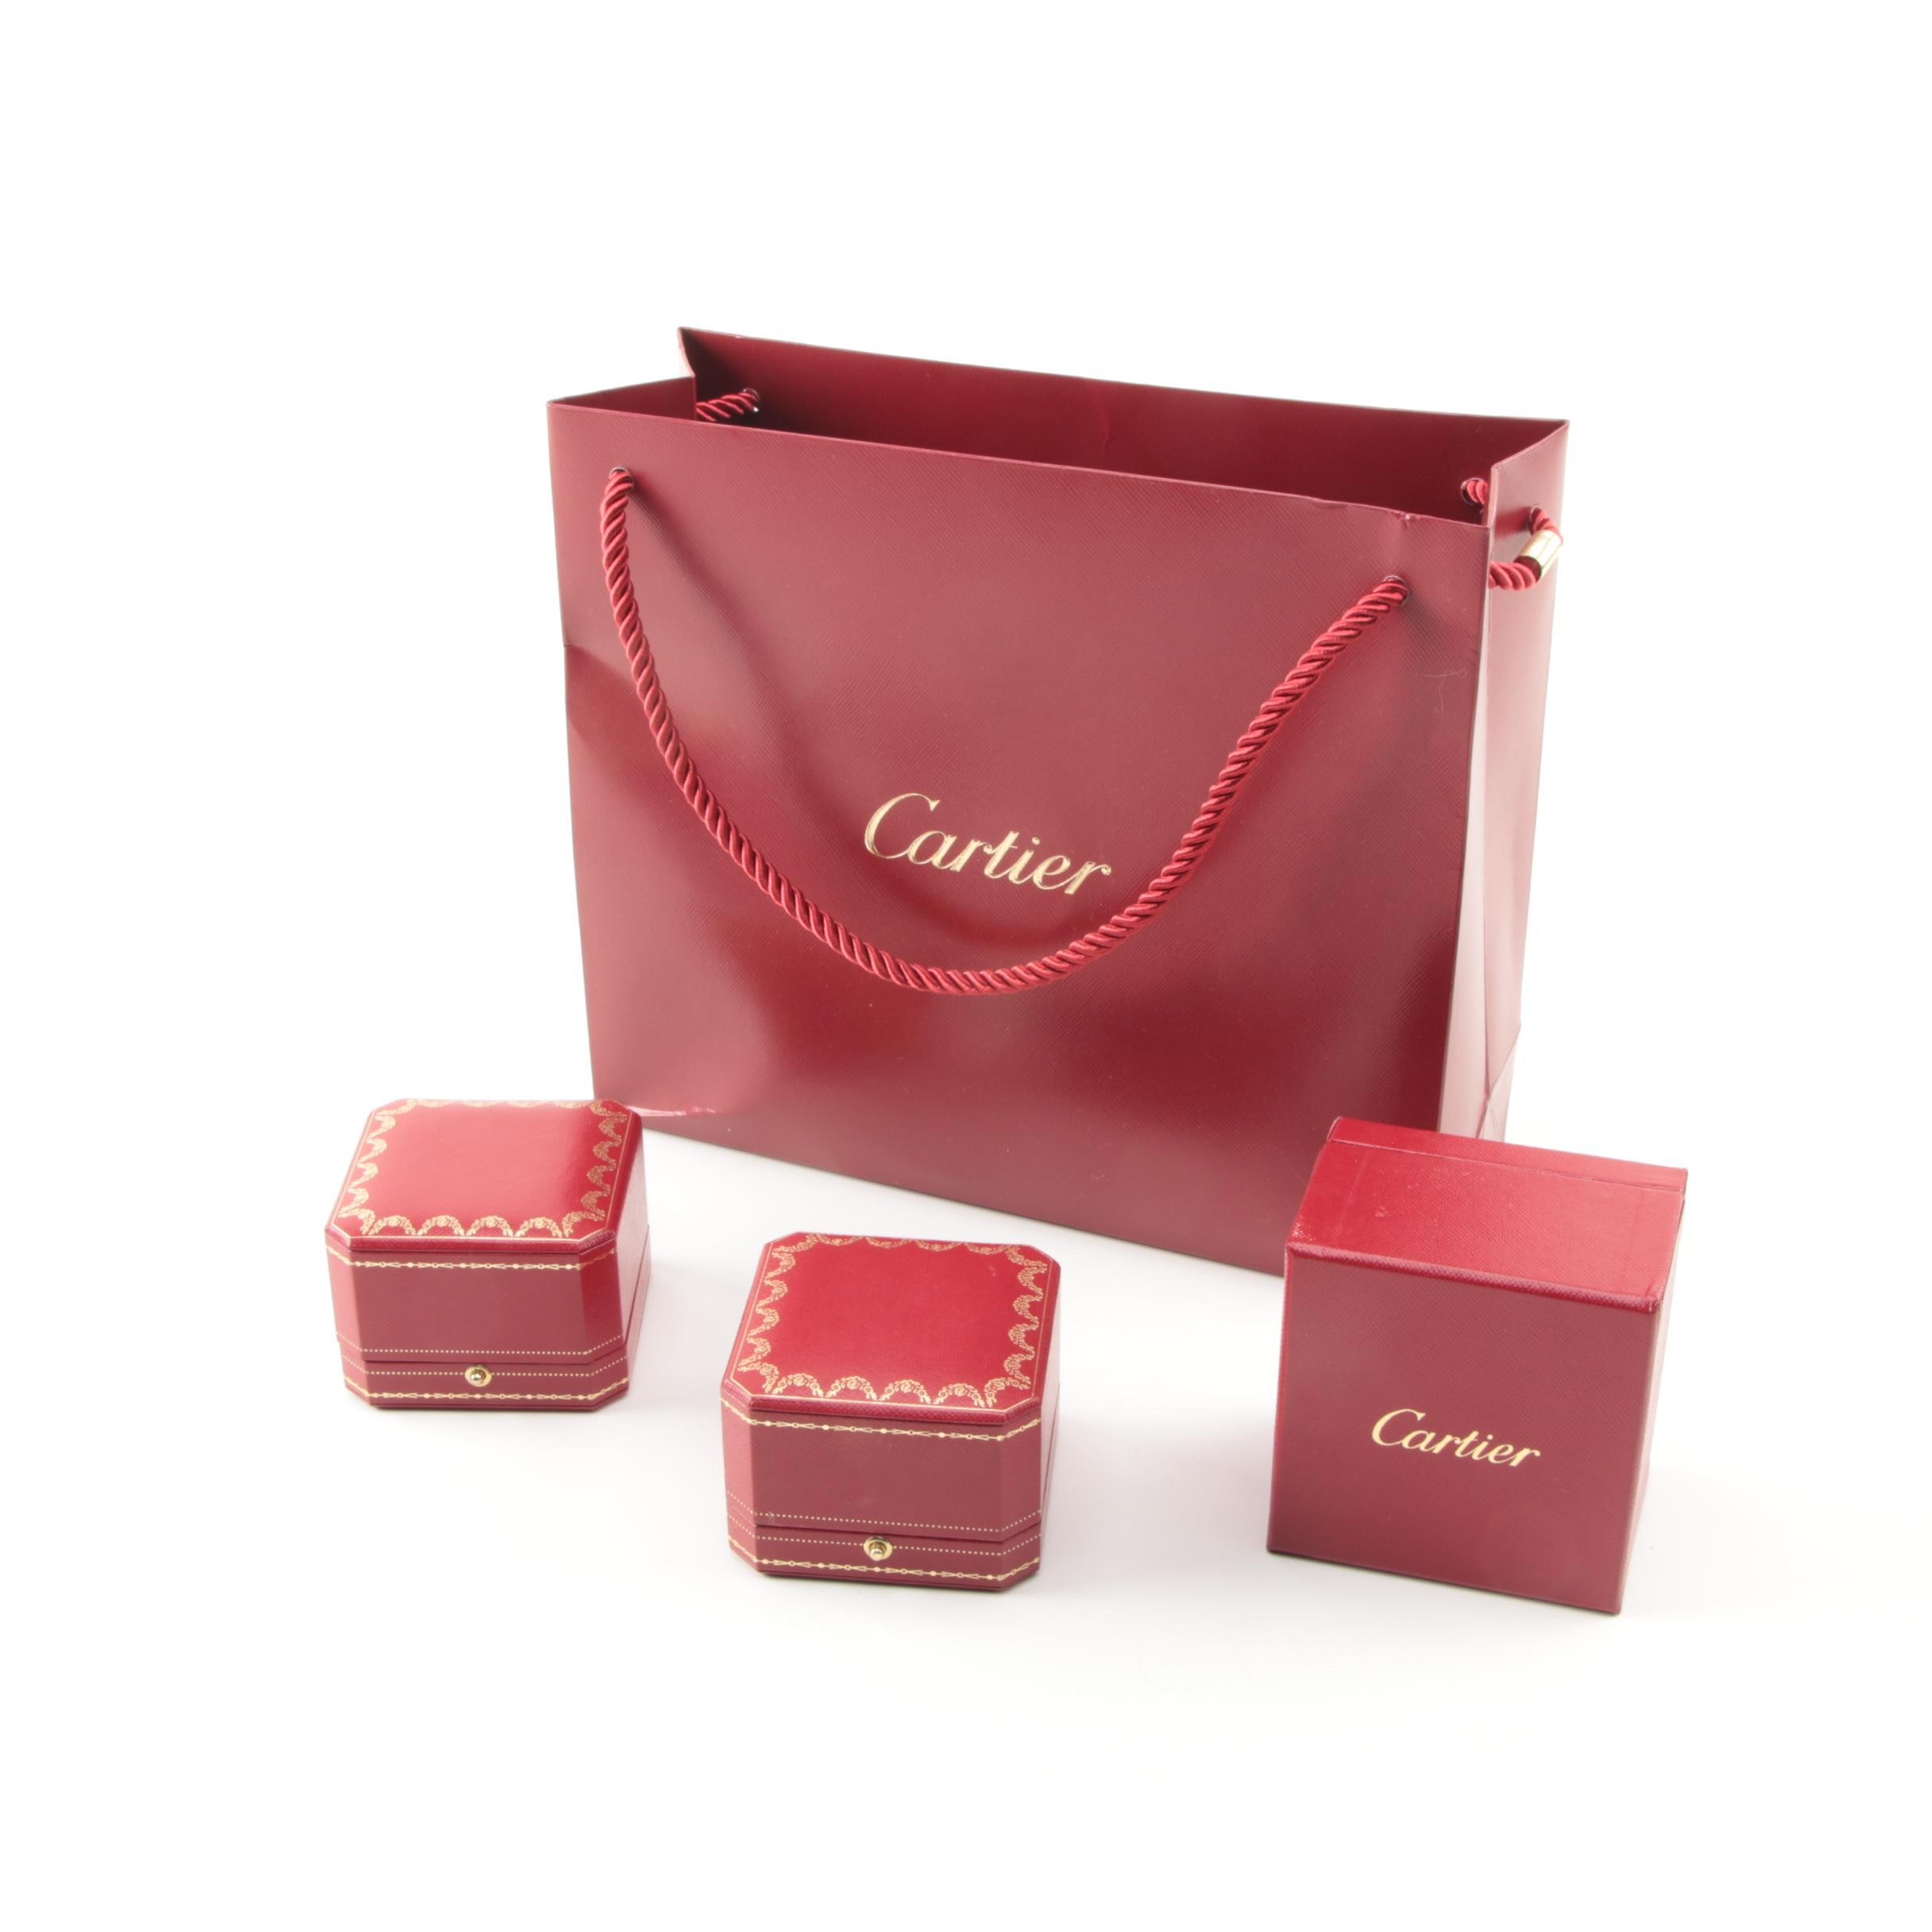 Cartier Boxes and Bag